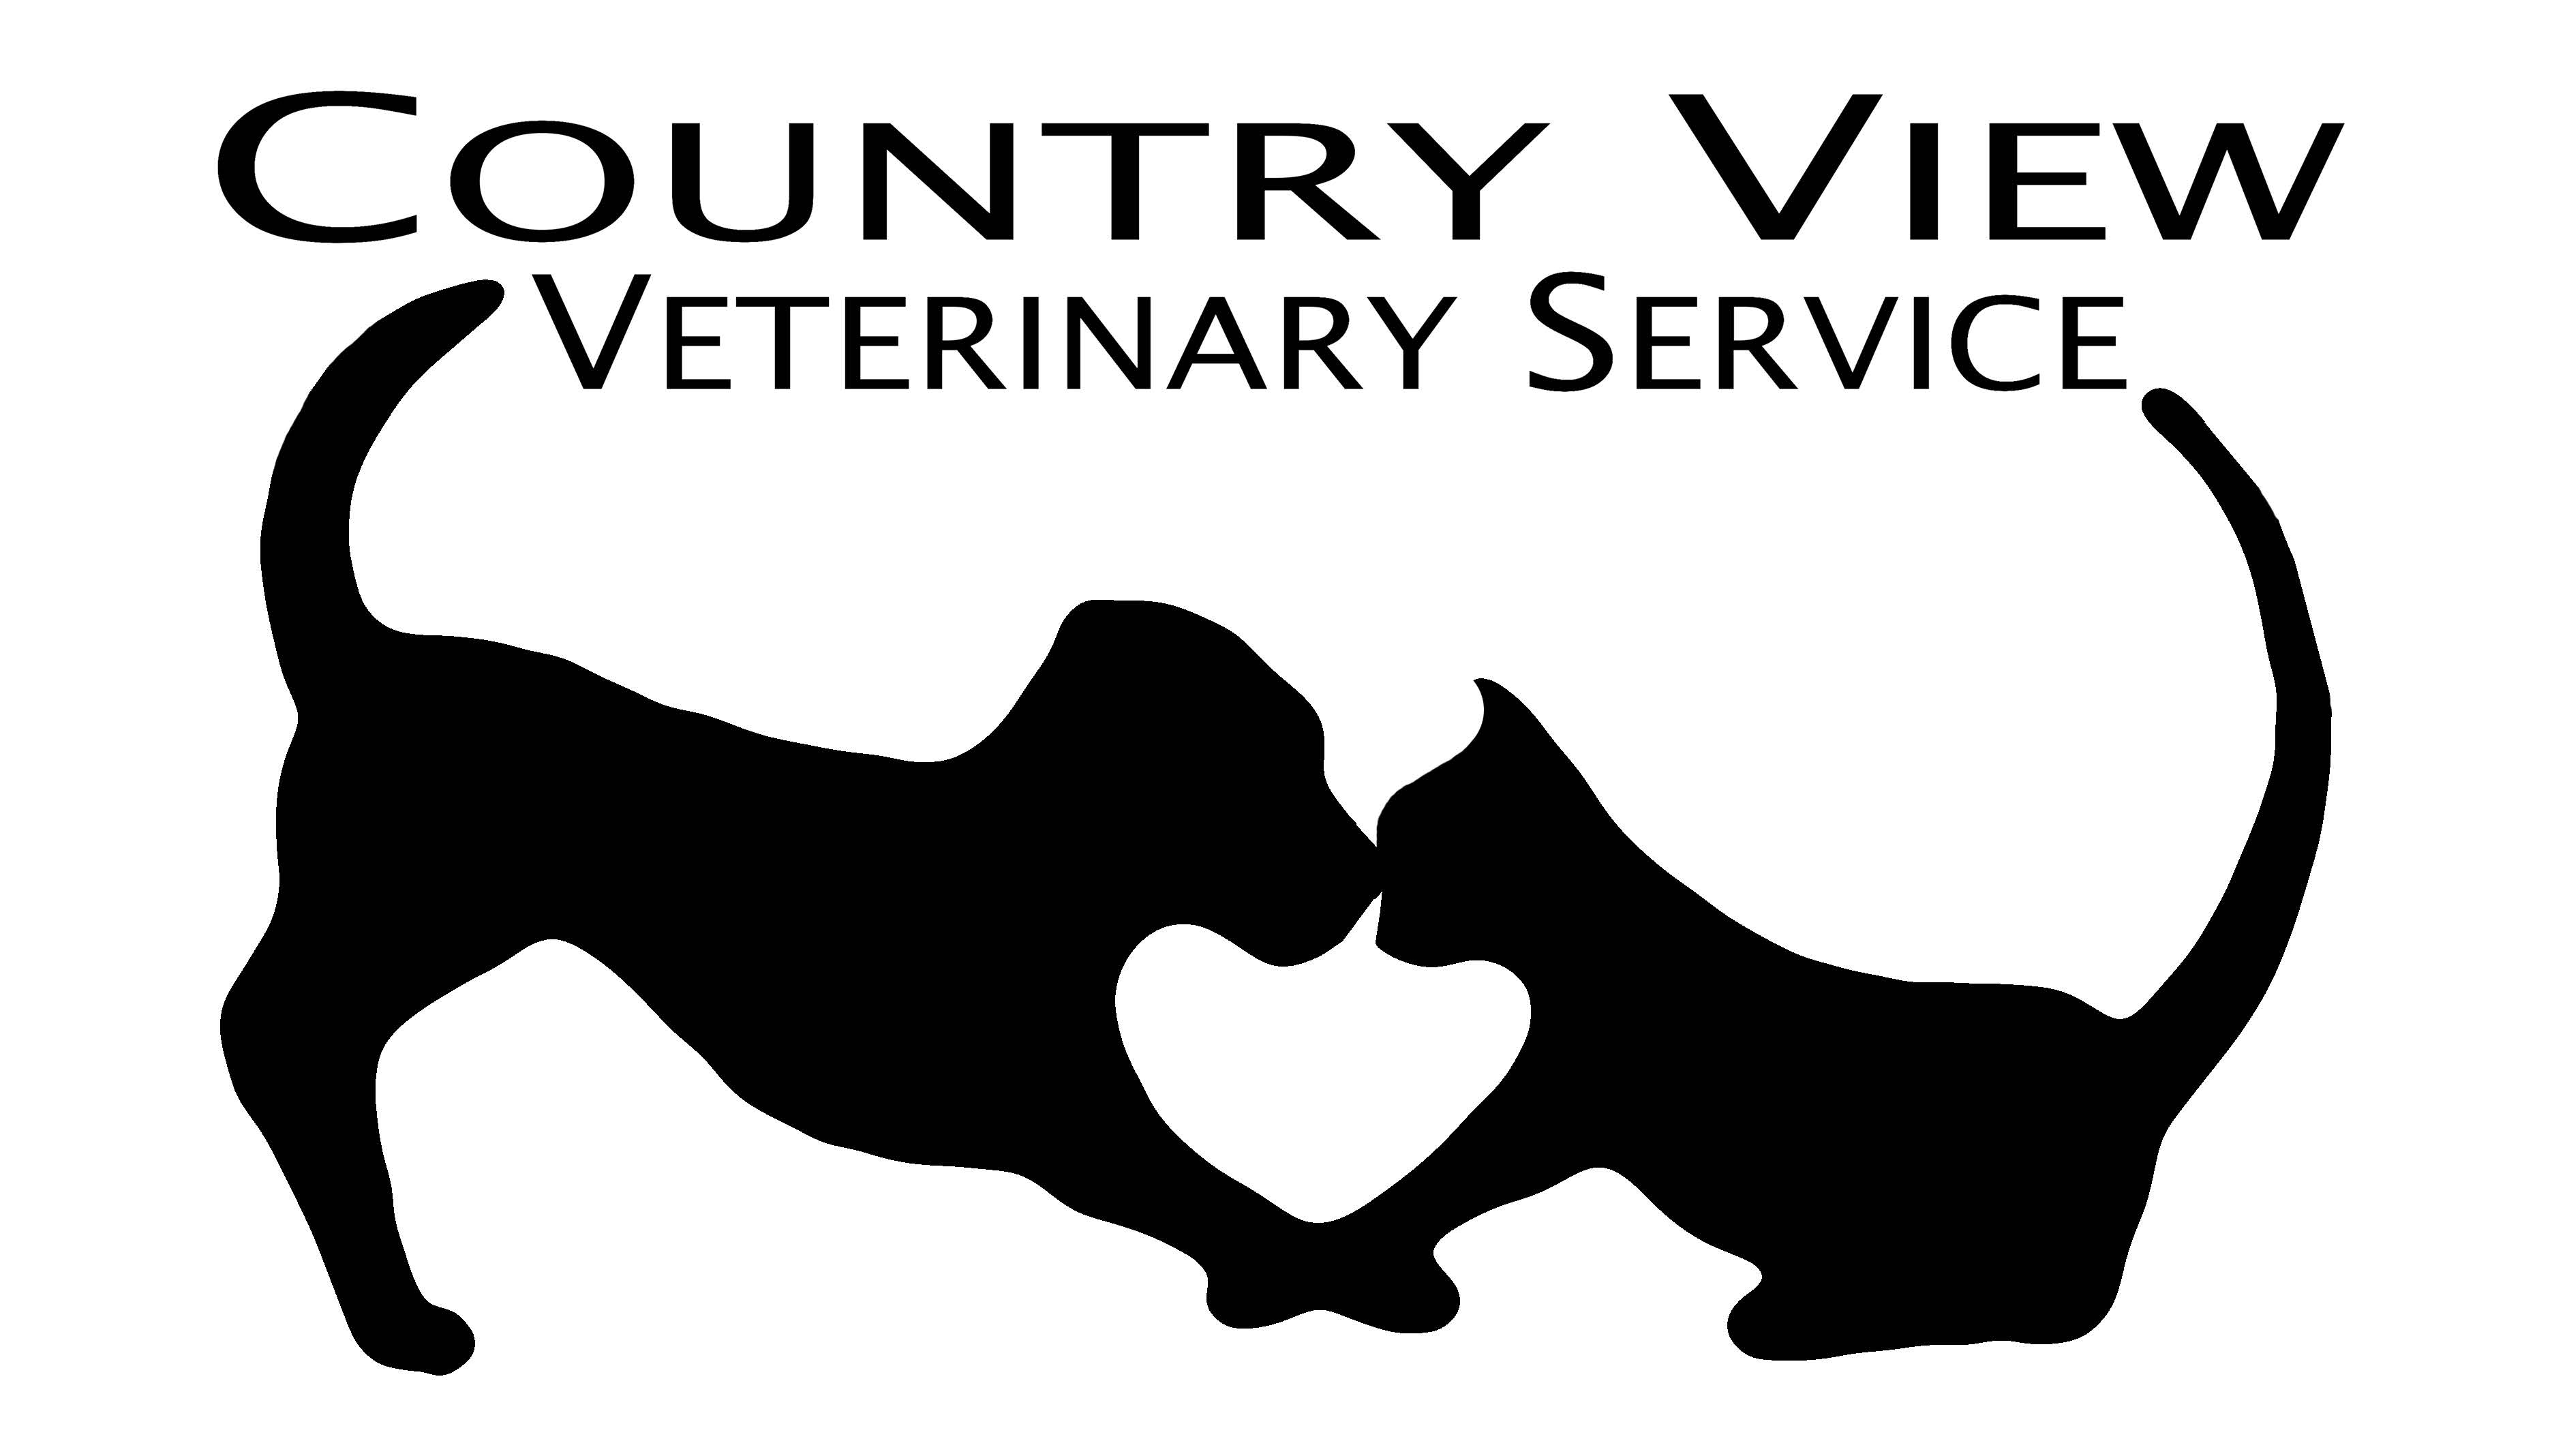 Country View Veterinary Service, Inc.